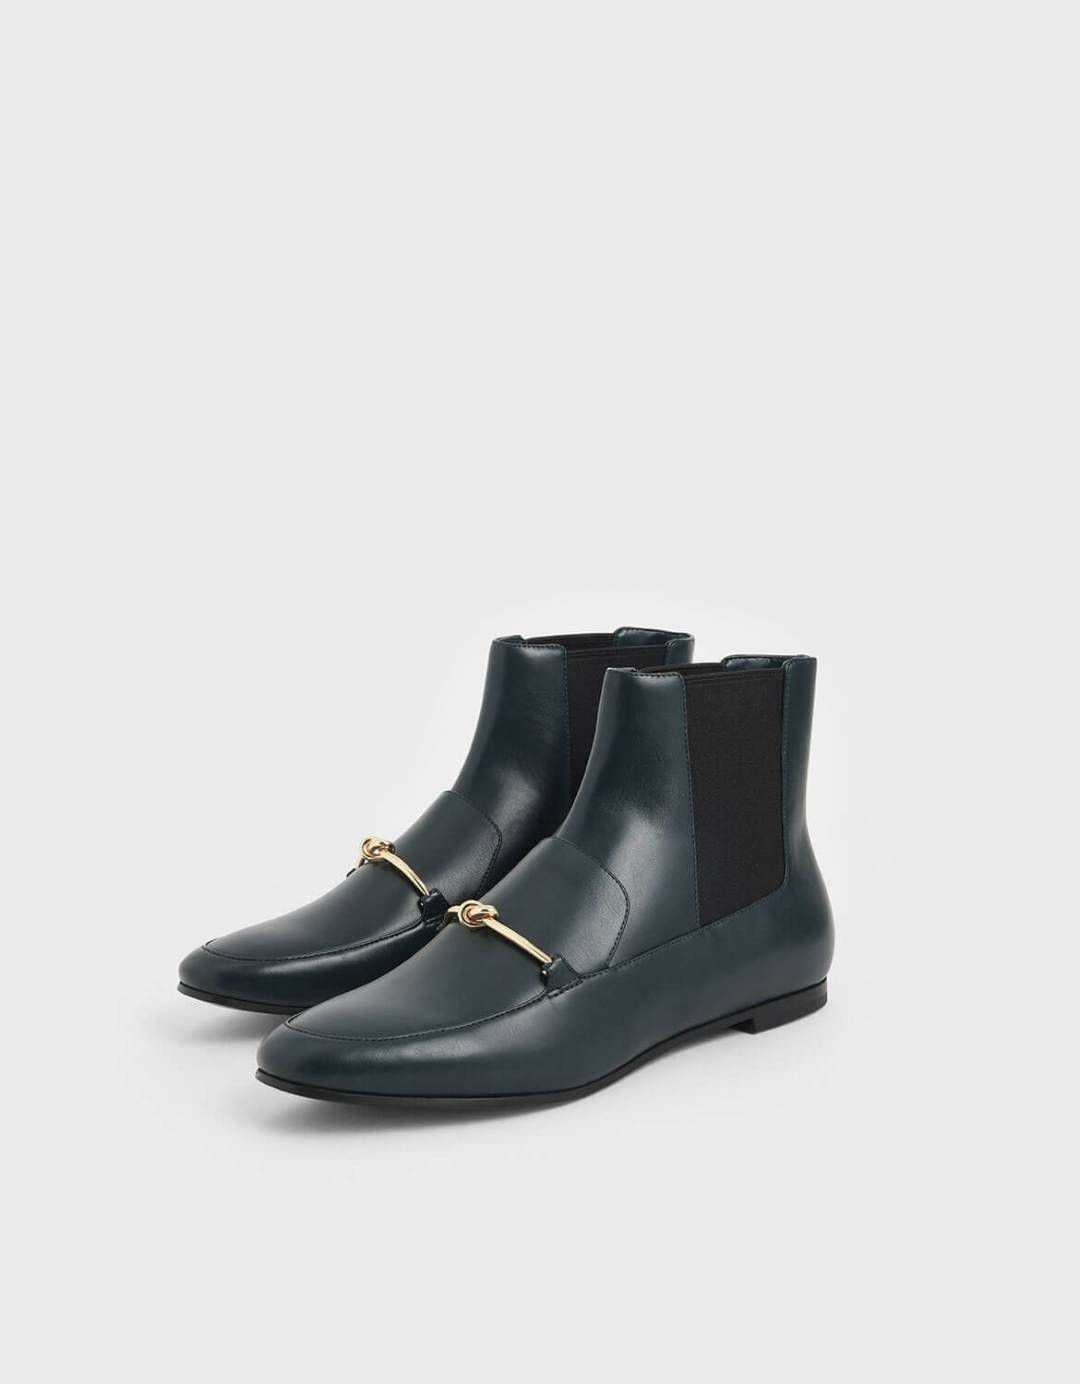 Metallic Knot Accent Chelsea Boots